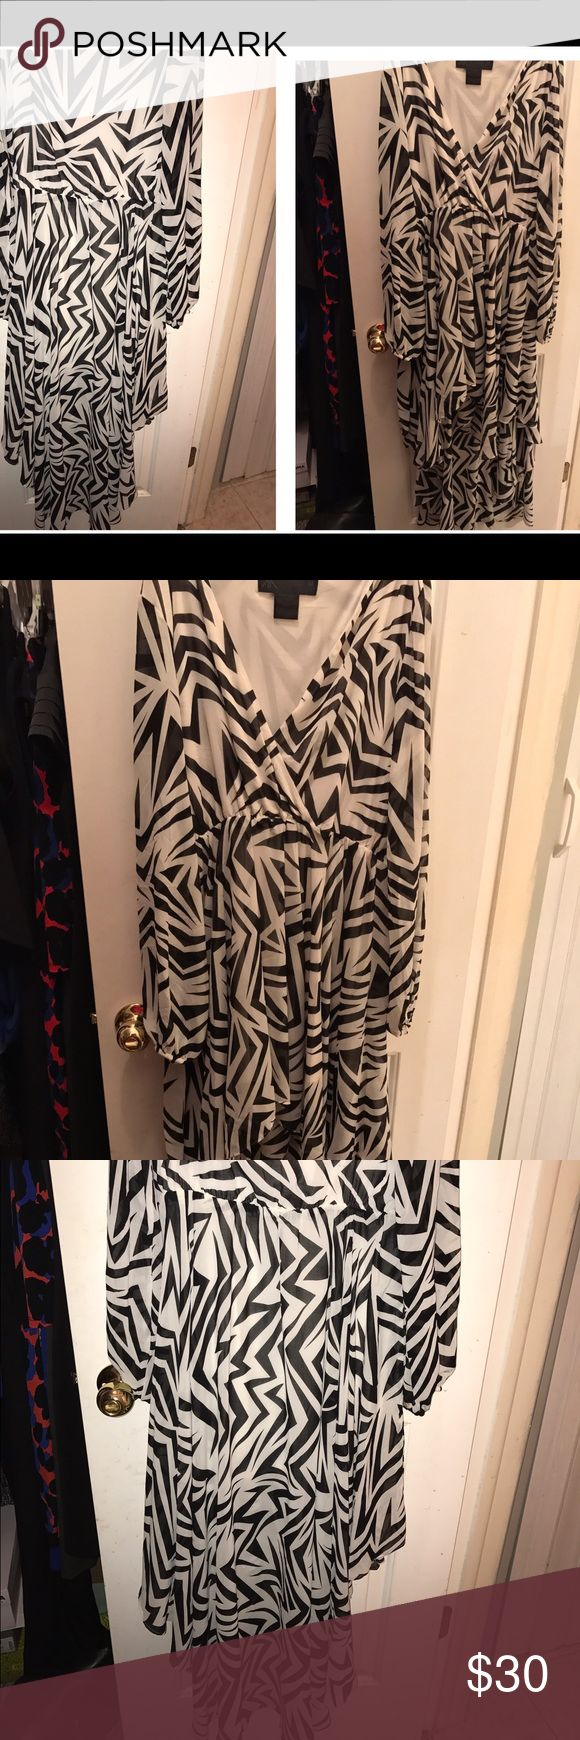 Kardashian high low dress high low dress from the Kardashian Kollection Kardashian Kollection Dresses High Low